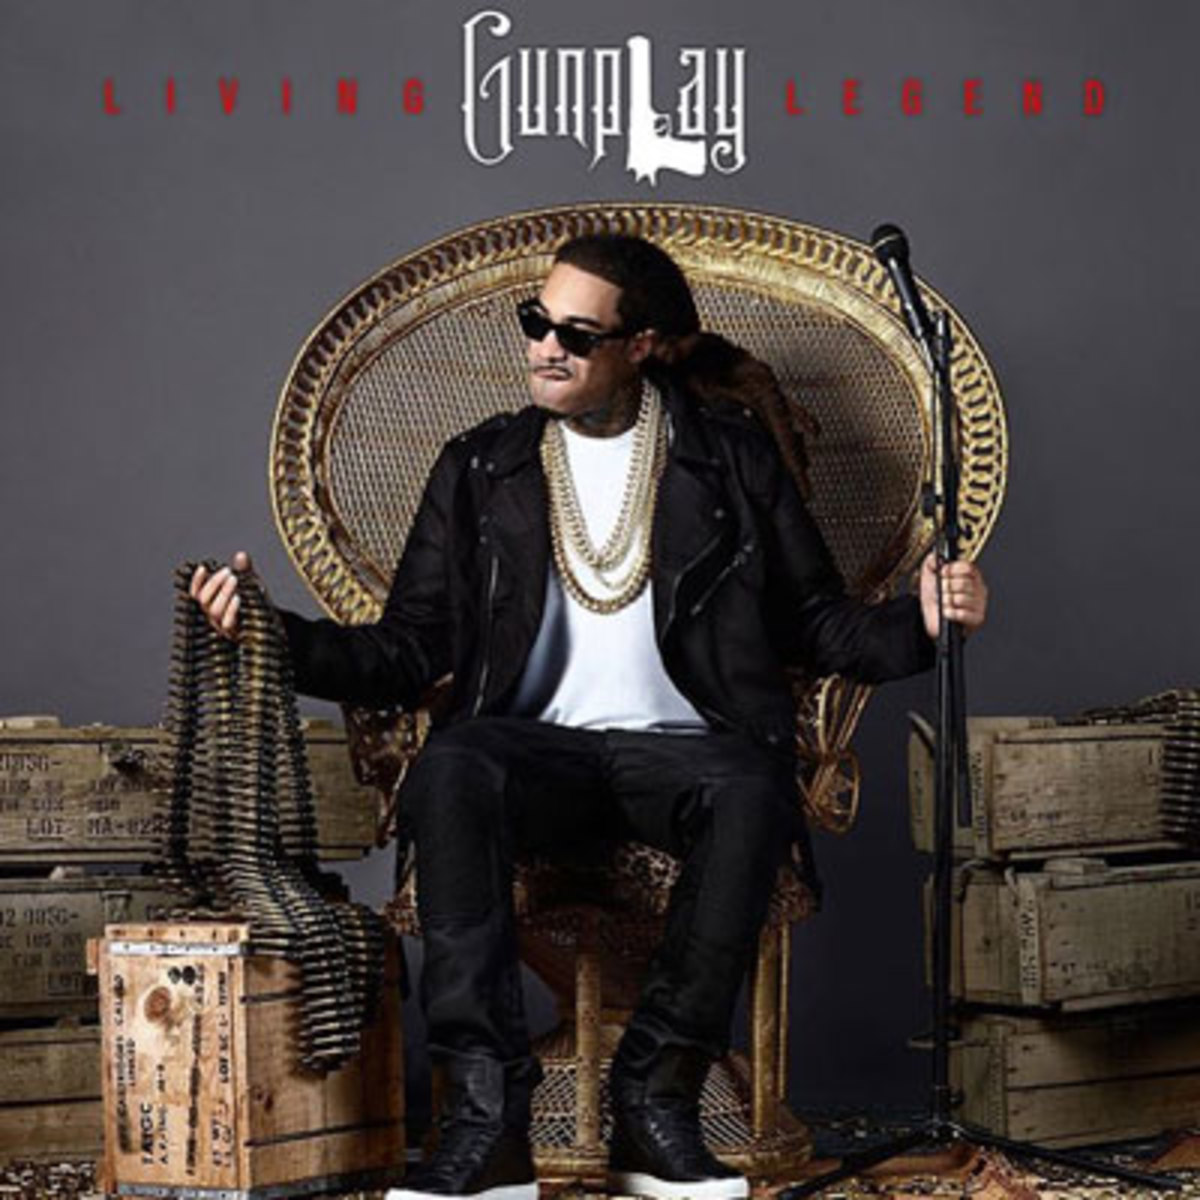 gunplay-living-legend.jpg